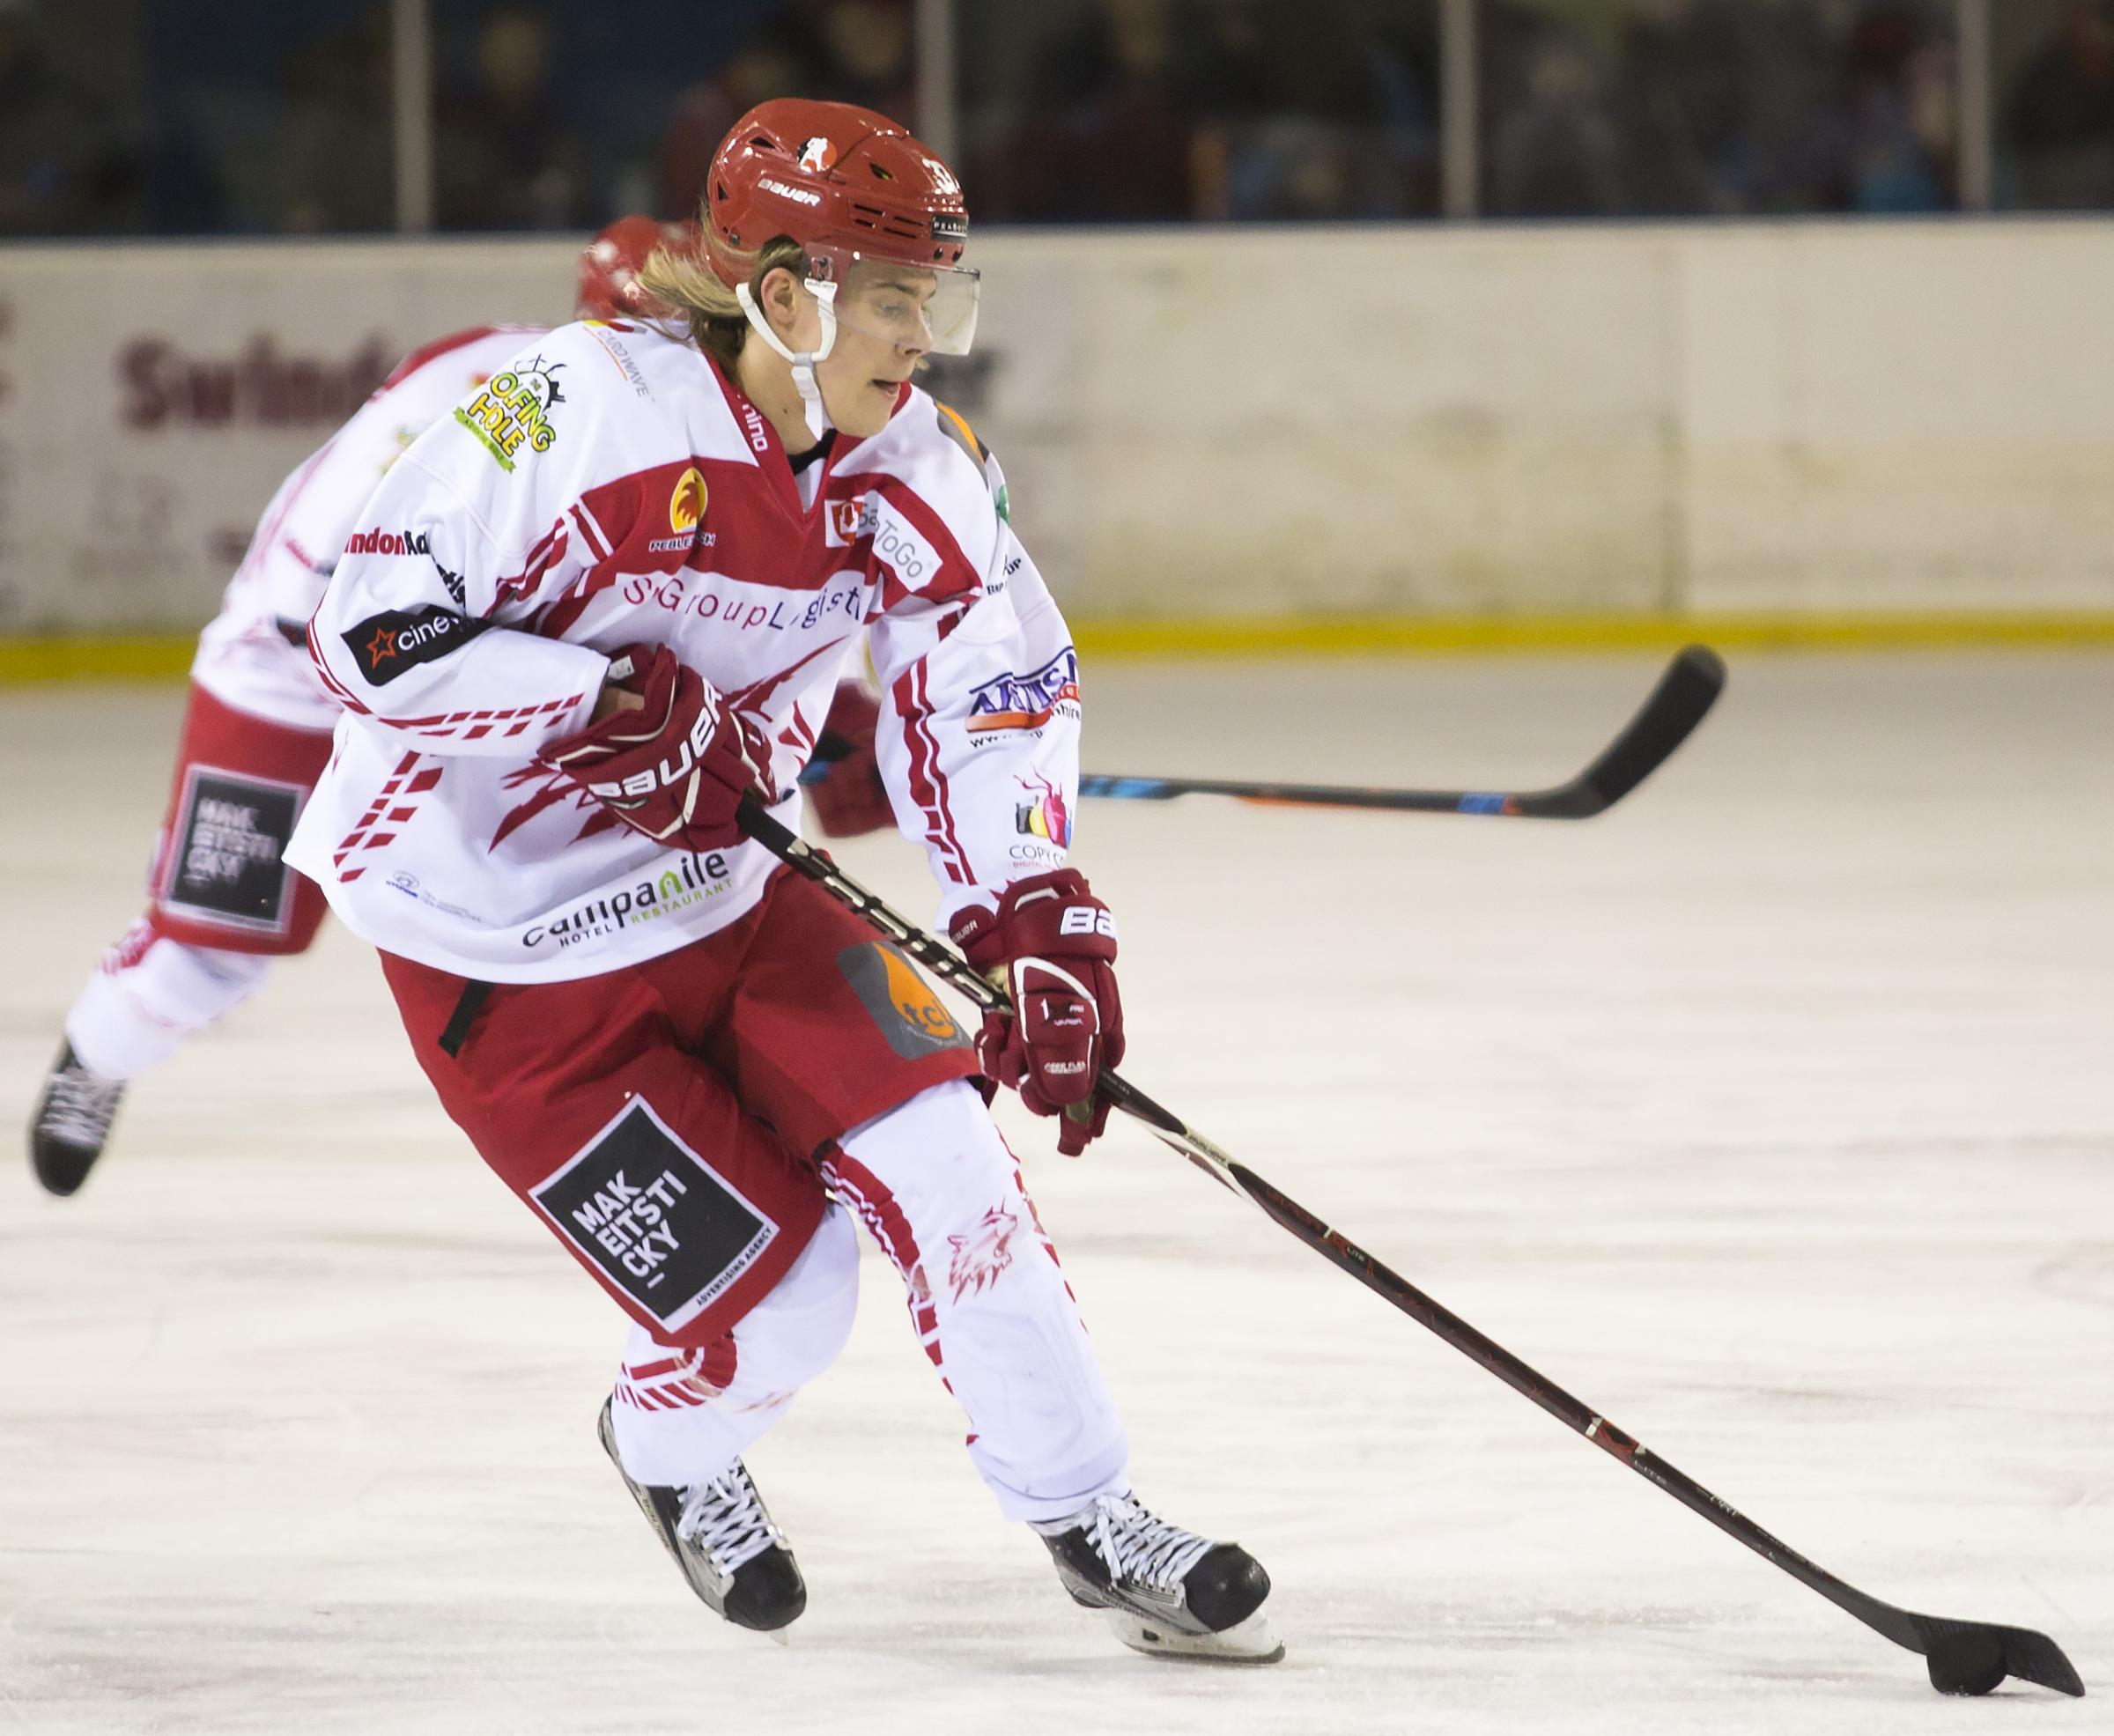 Swindon WIldcats Vs Streatham, tom rutkis in action tonight at the link, Picture Ryan Ainscow 17.02.18.